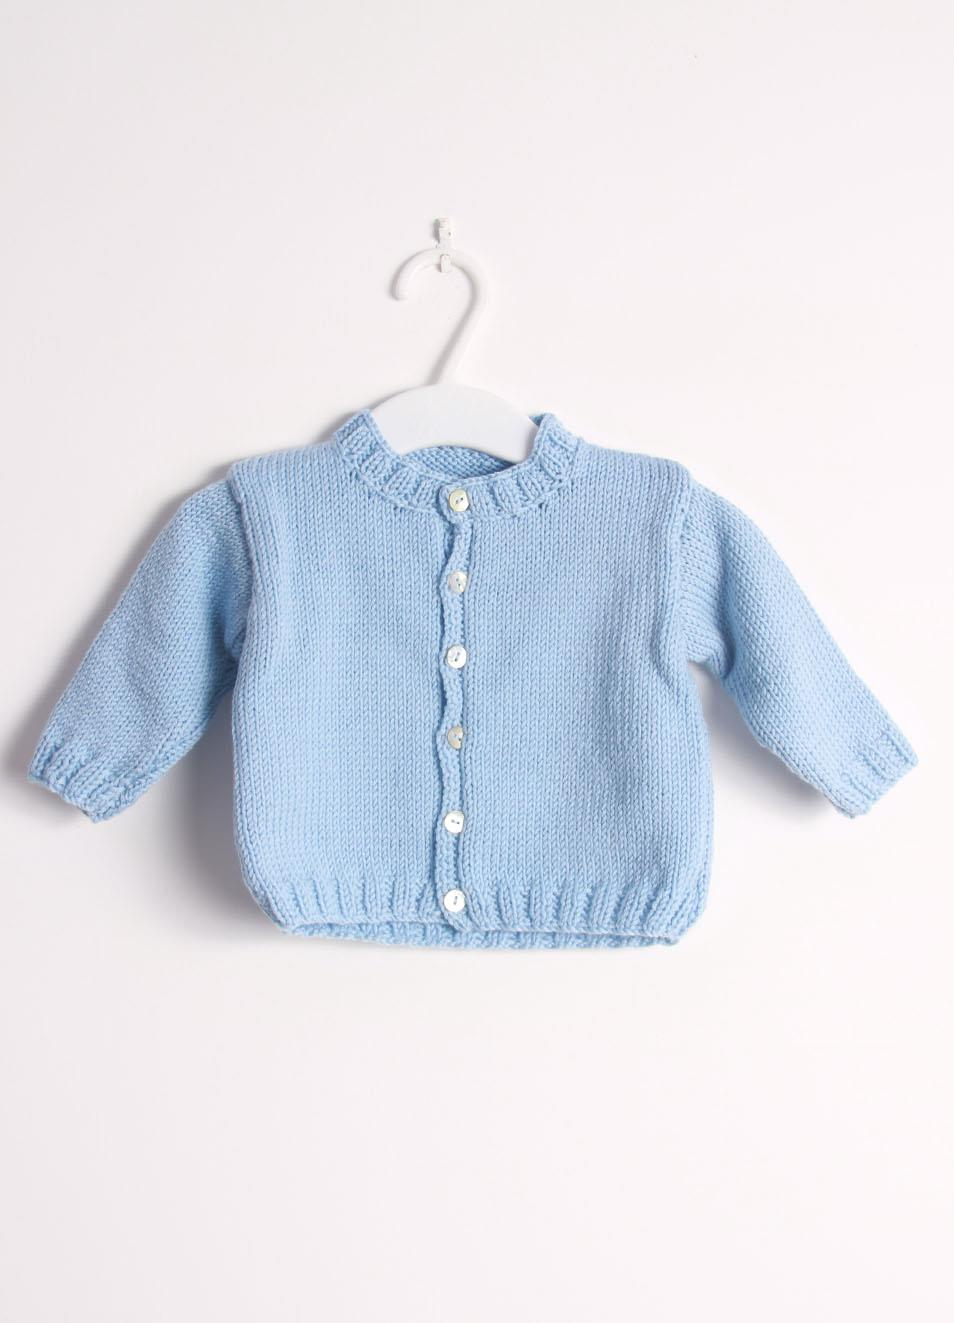 a19b9512c4 Wool cardigan sweater for new born